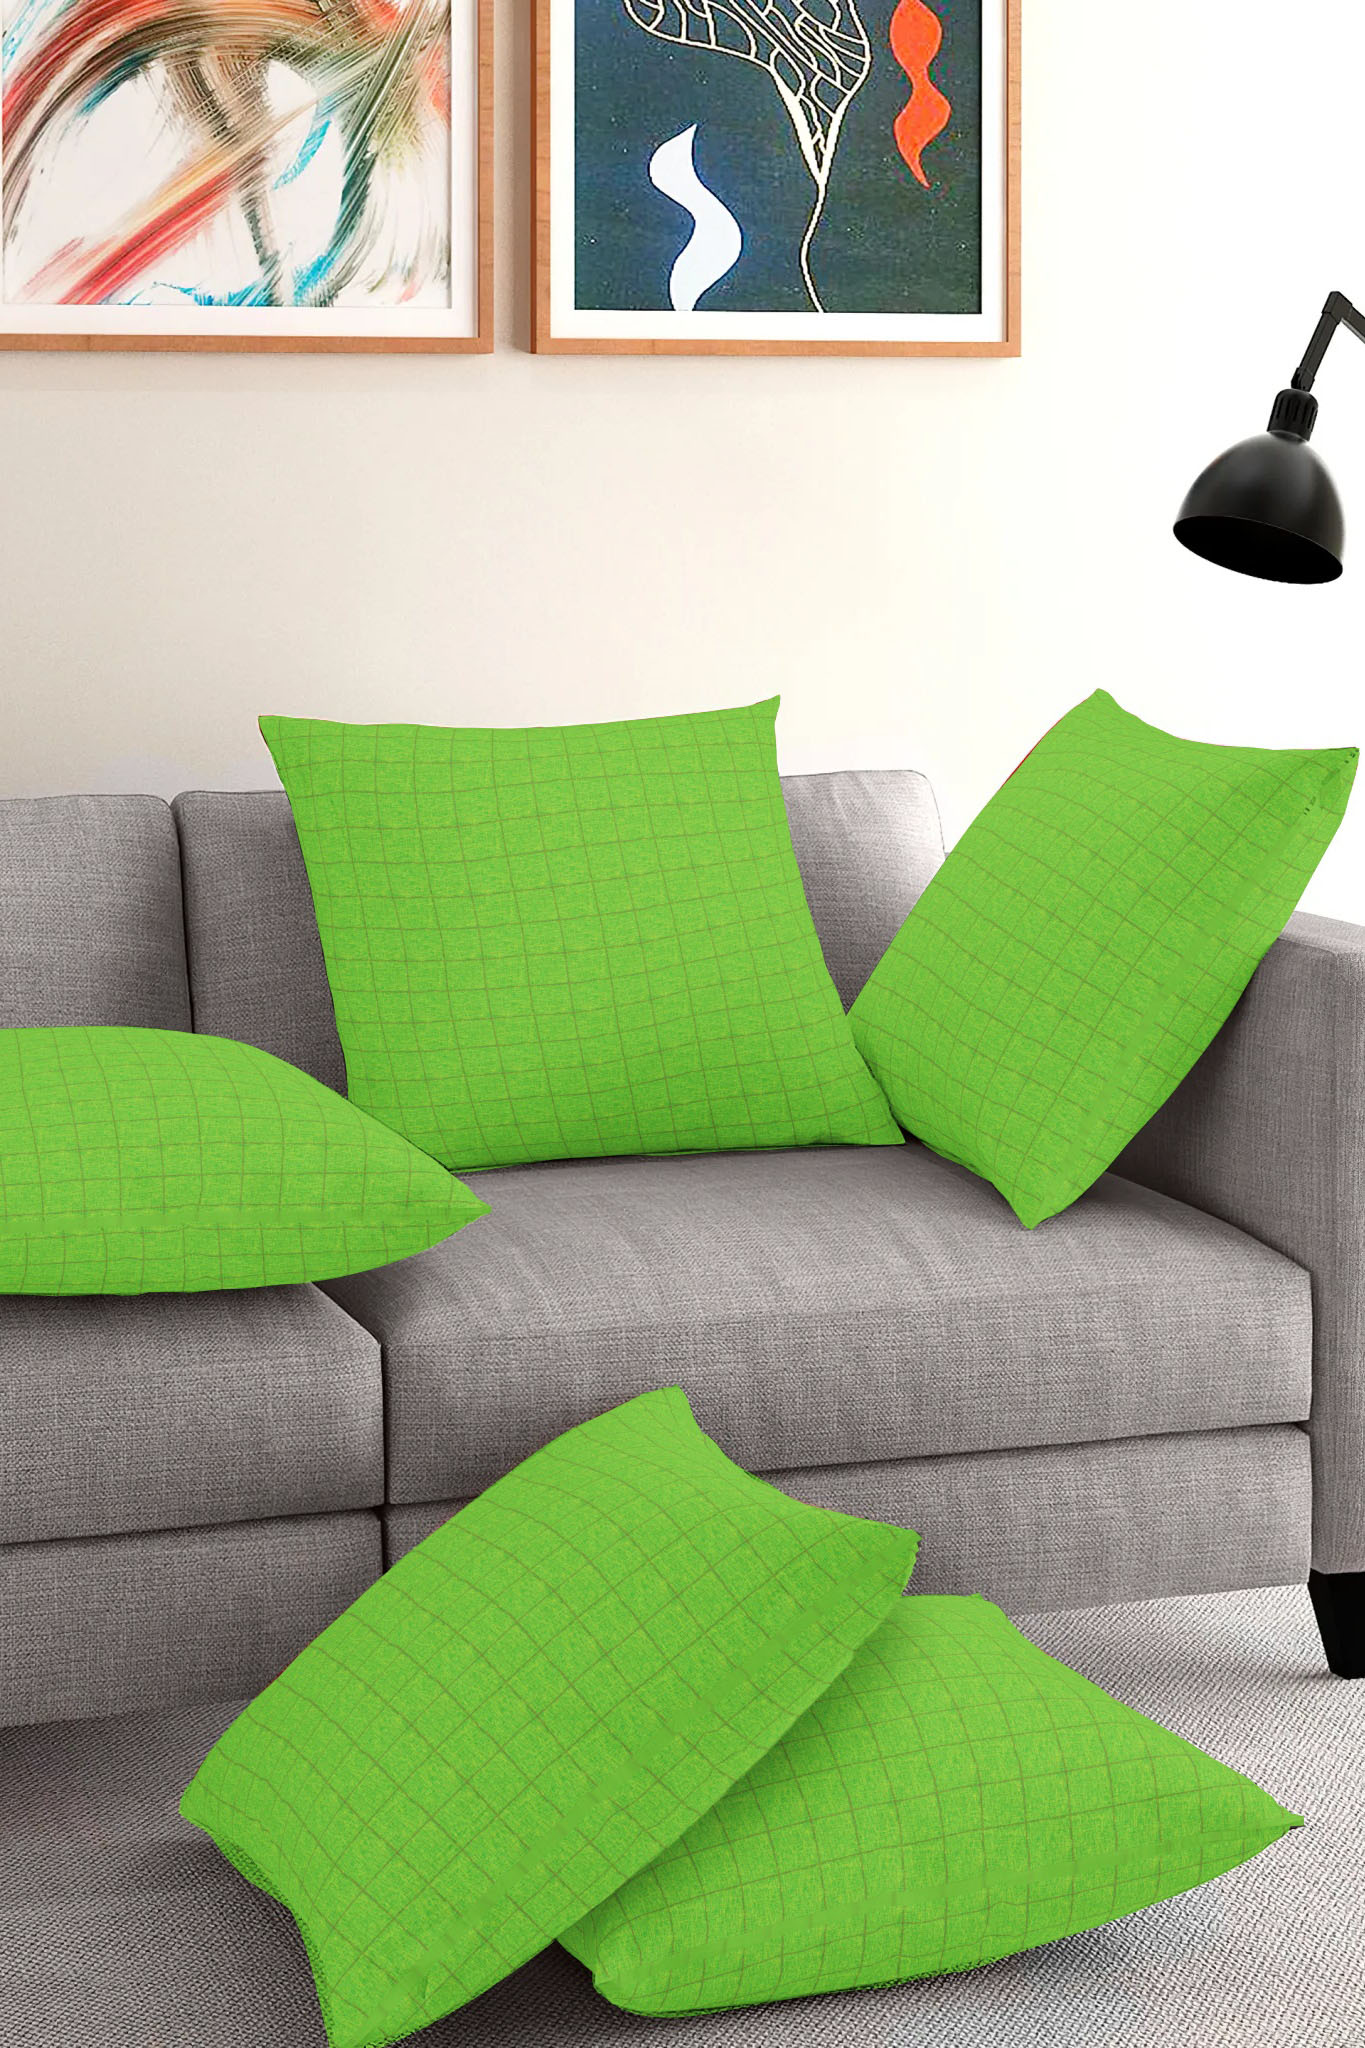 Set of 5-Green Golden Cotton Cushion Cover-35396-16x16 Inches